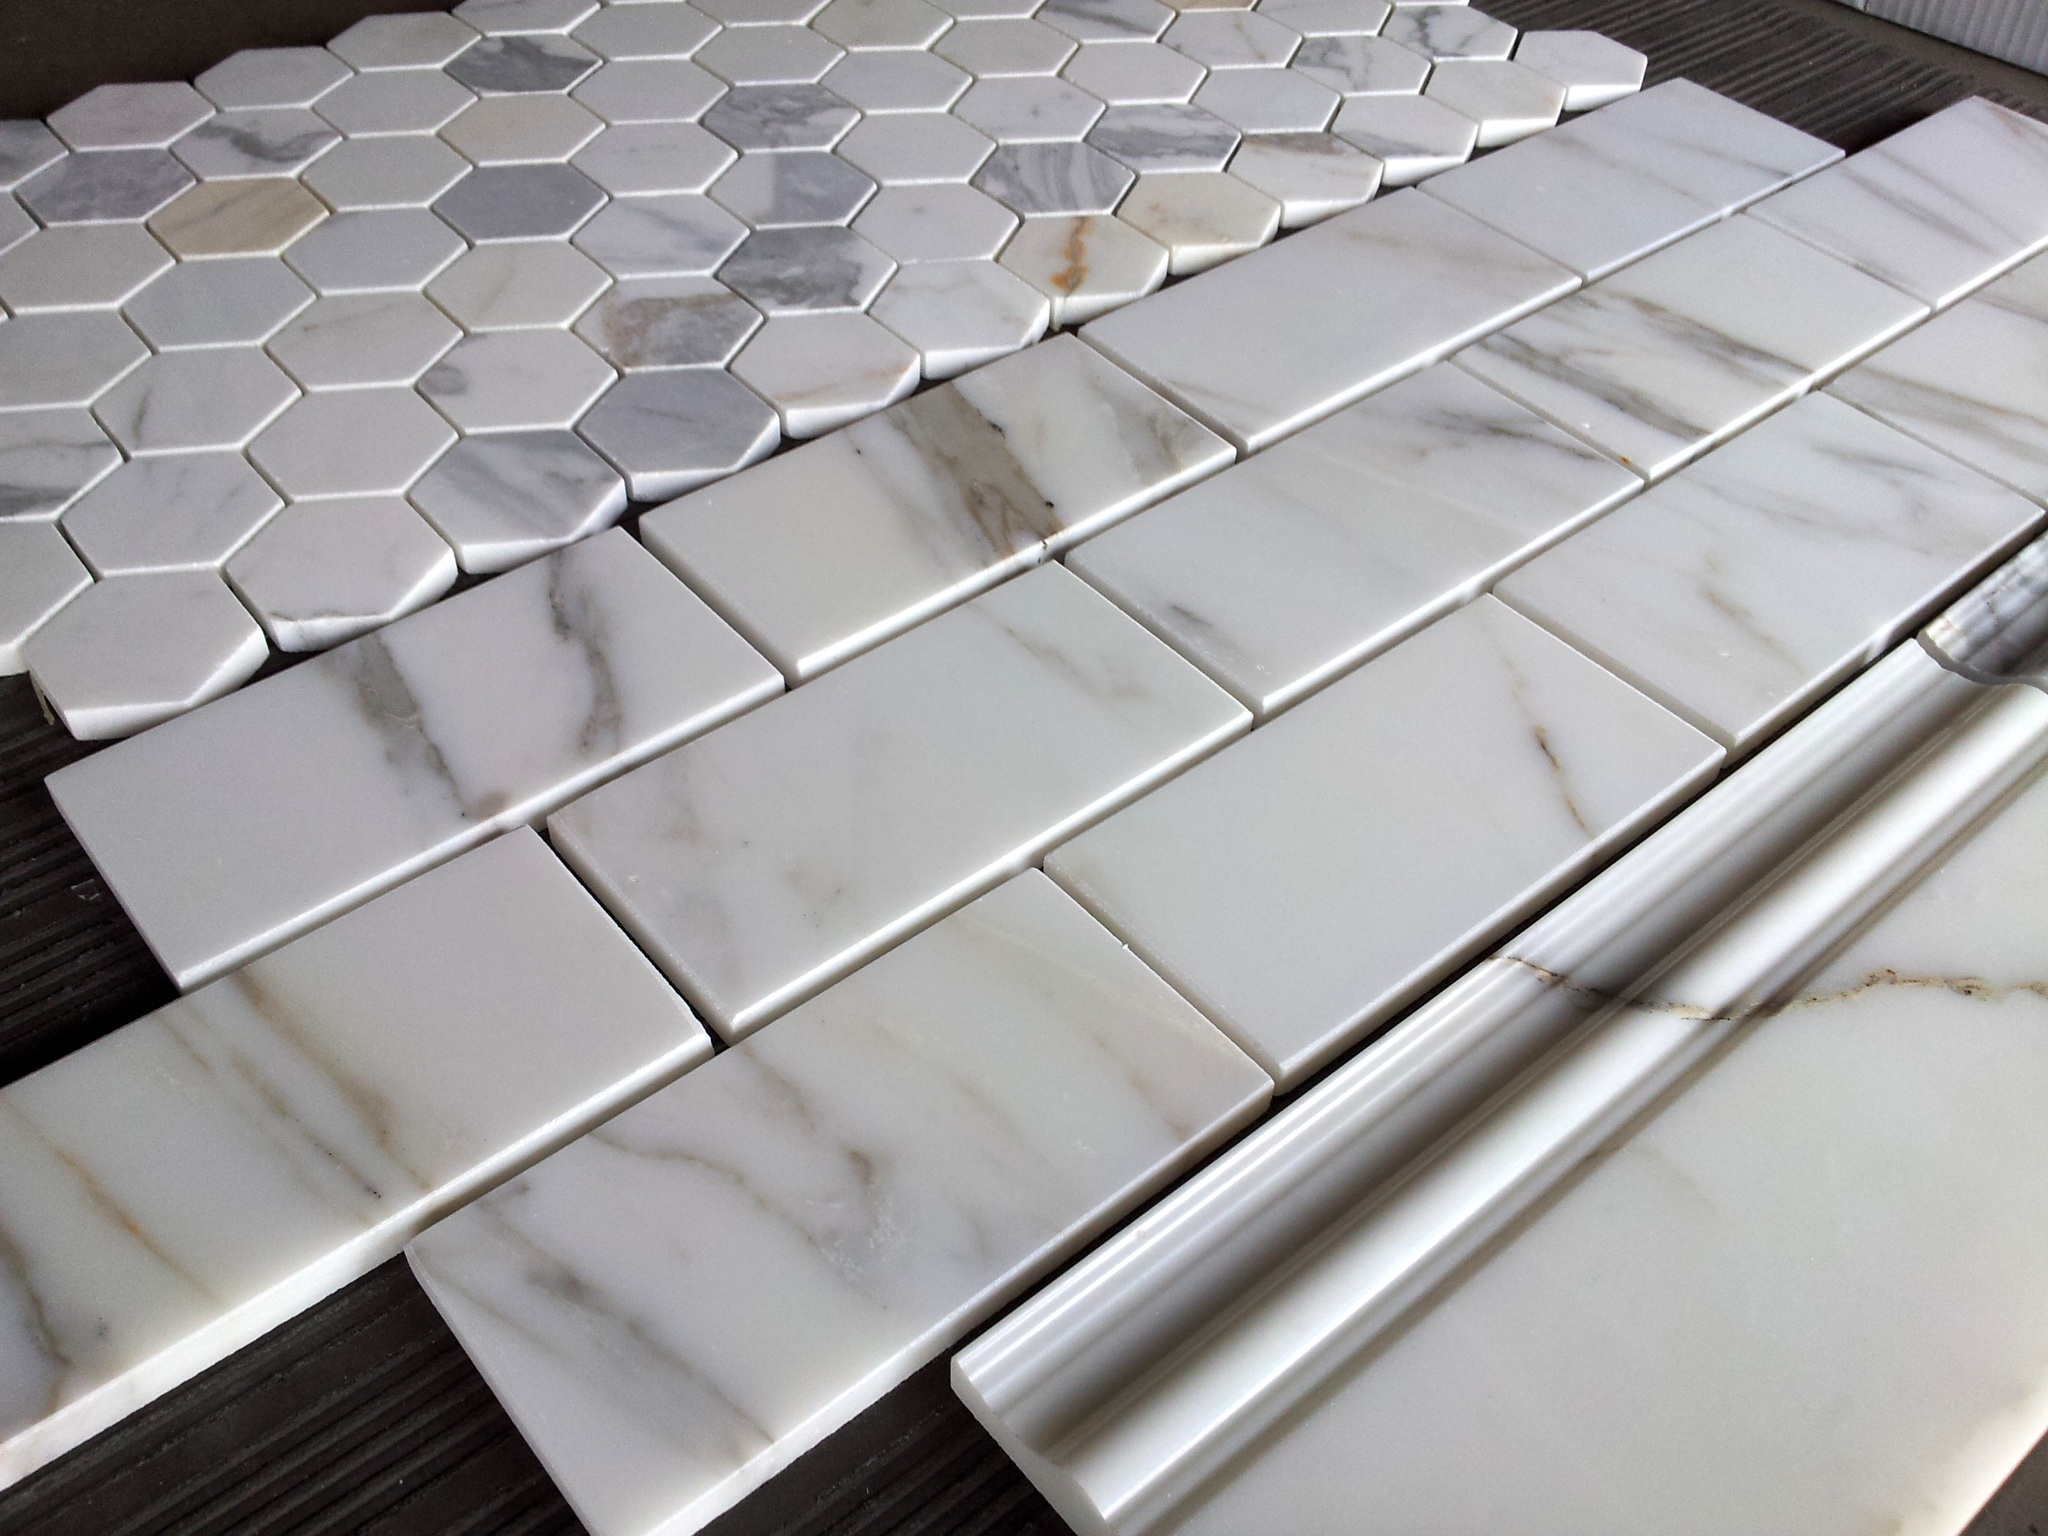 Comfortable 1 X 1 Ceiling Tiles Tiny 1200 X 1200 Floor Tiles Shaped 2 X 2 Ceiling Tile 2X2 Ceramic Floor Tile Youthful 4 X 4 Ceramic Tile Fresh4 X 4 Ceramic Tiles Calacatta Marble Collection | The Builder Depot Blog